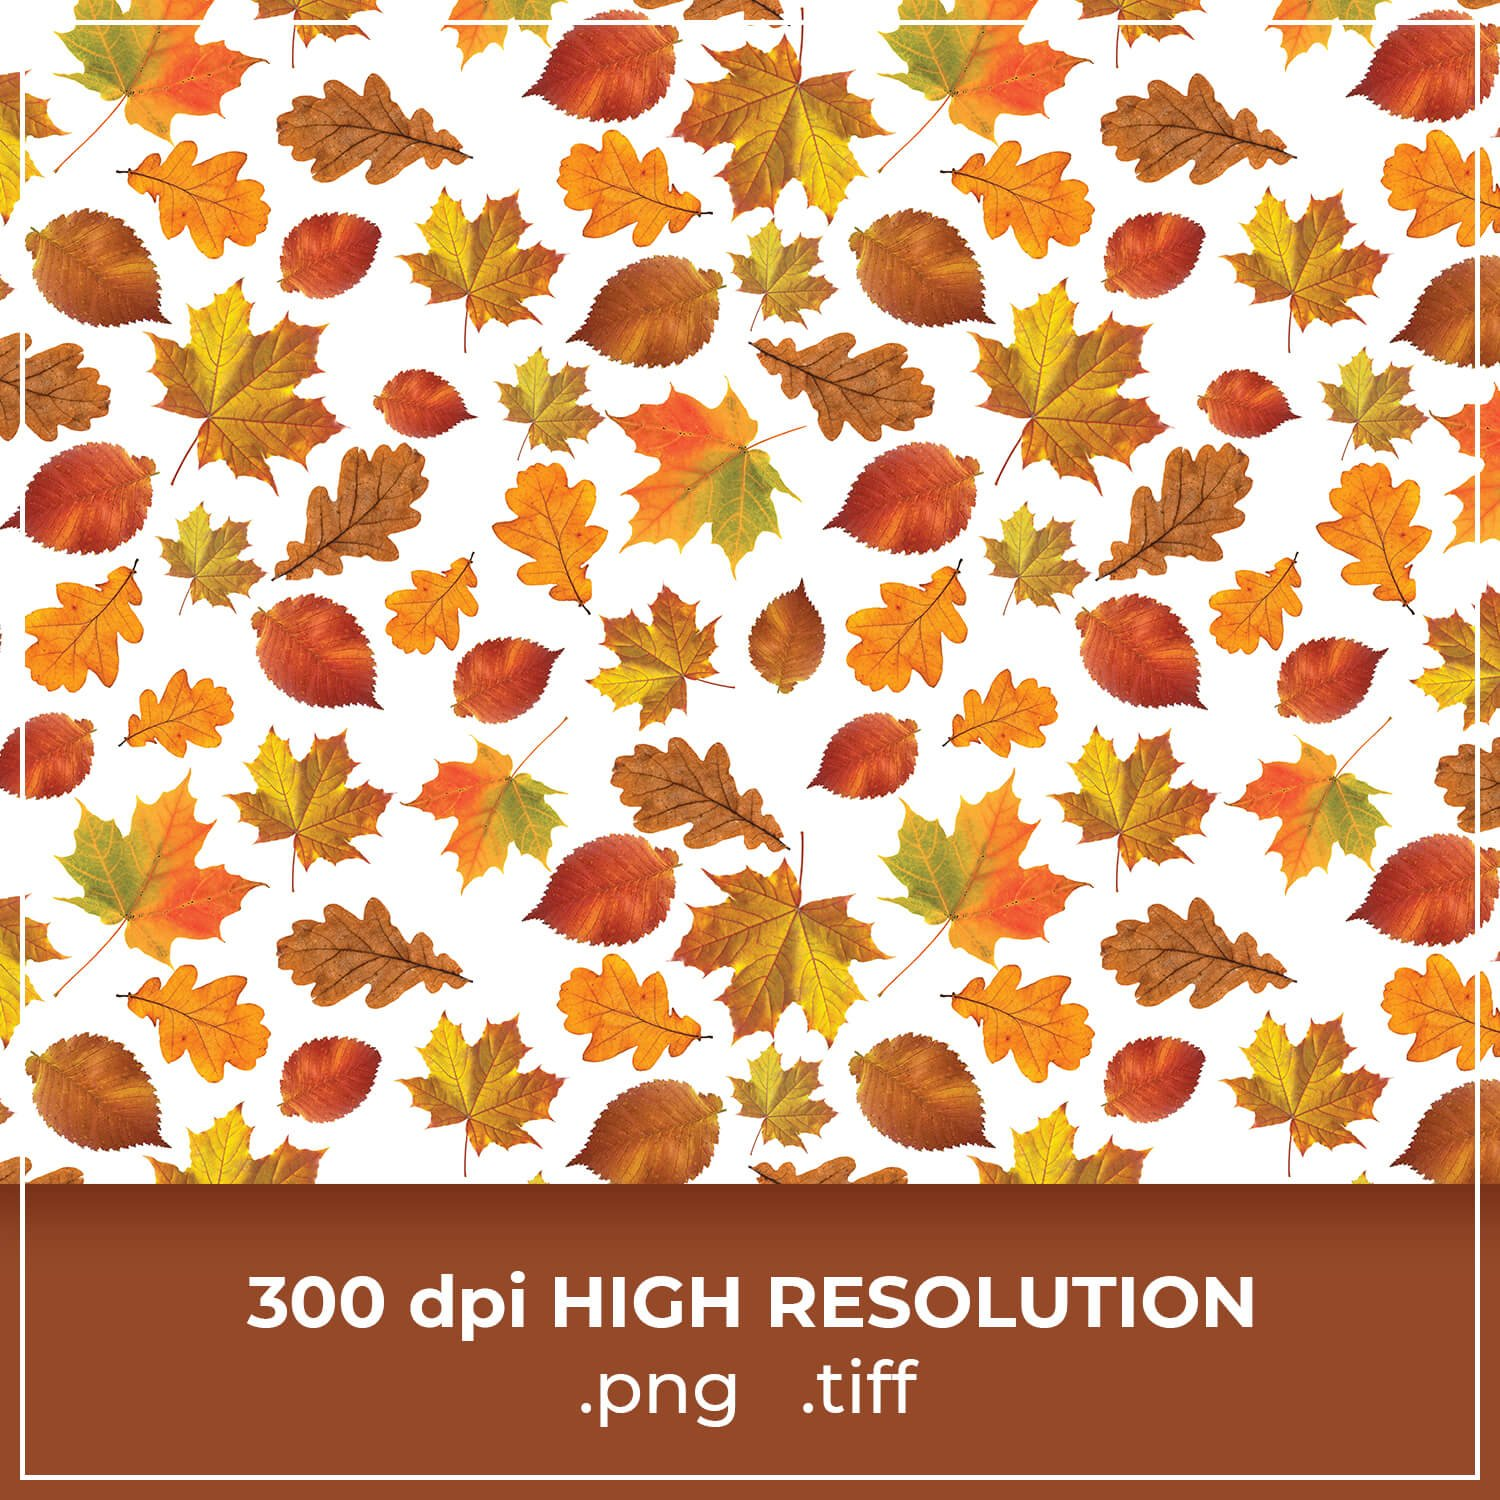 Free Autumn Leaves Pattern cover image.